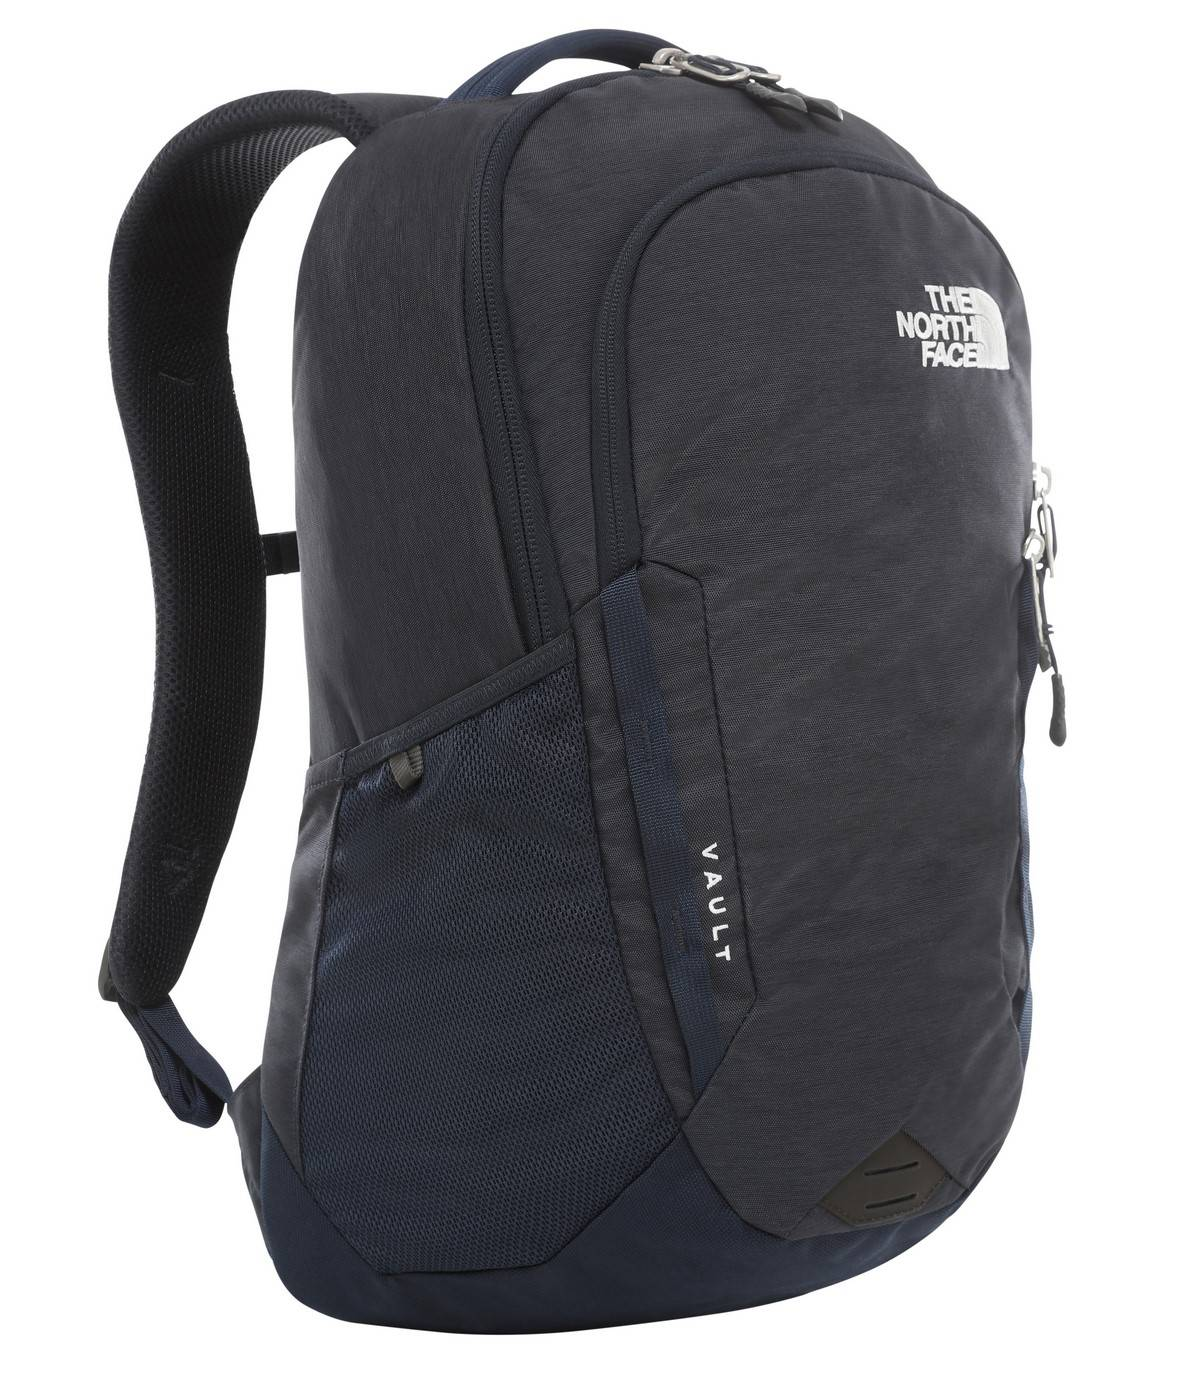 The North Face Zaino The North Face Vault Urban Navy EN0